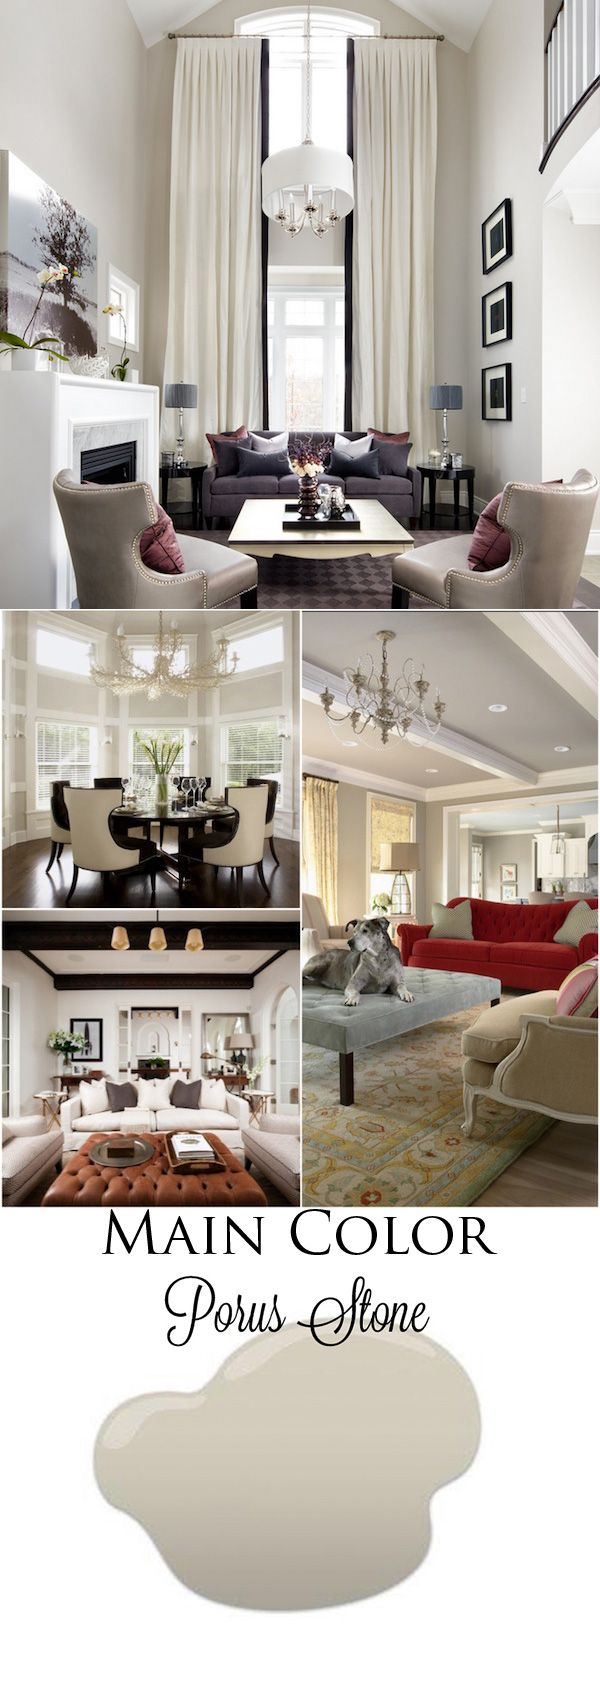 paint home design%0A military to civilian resume examples